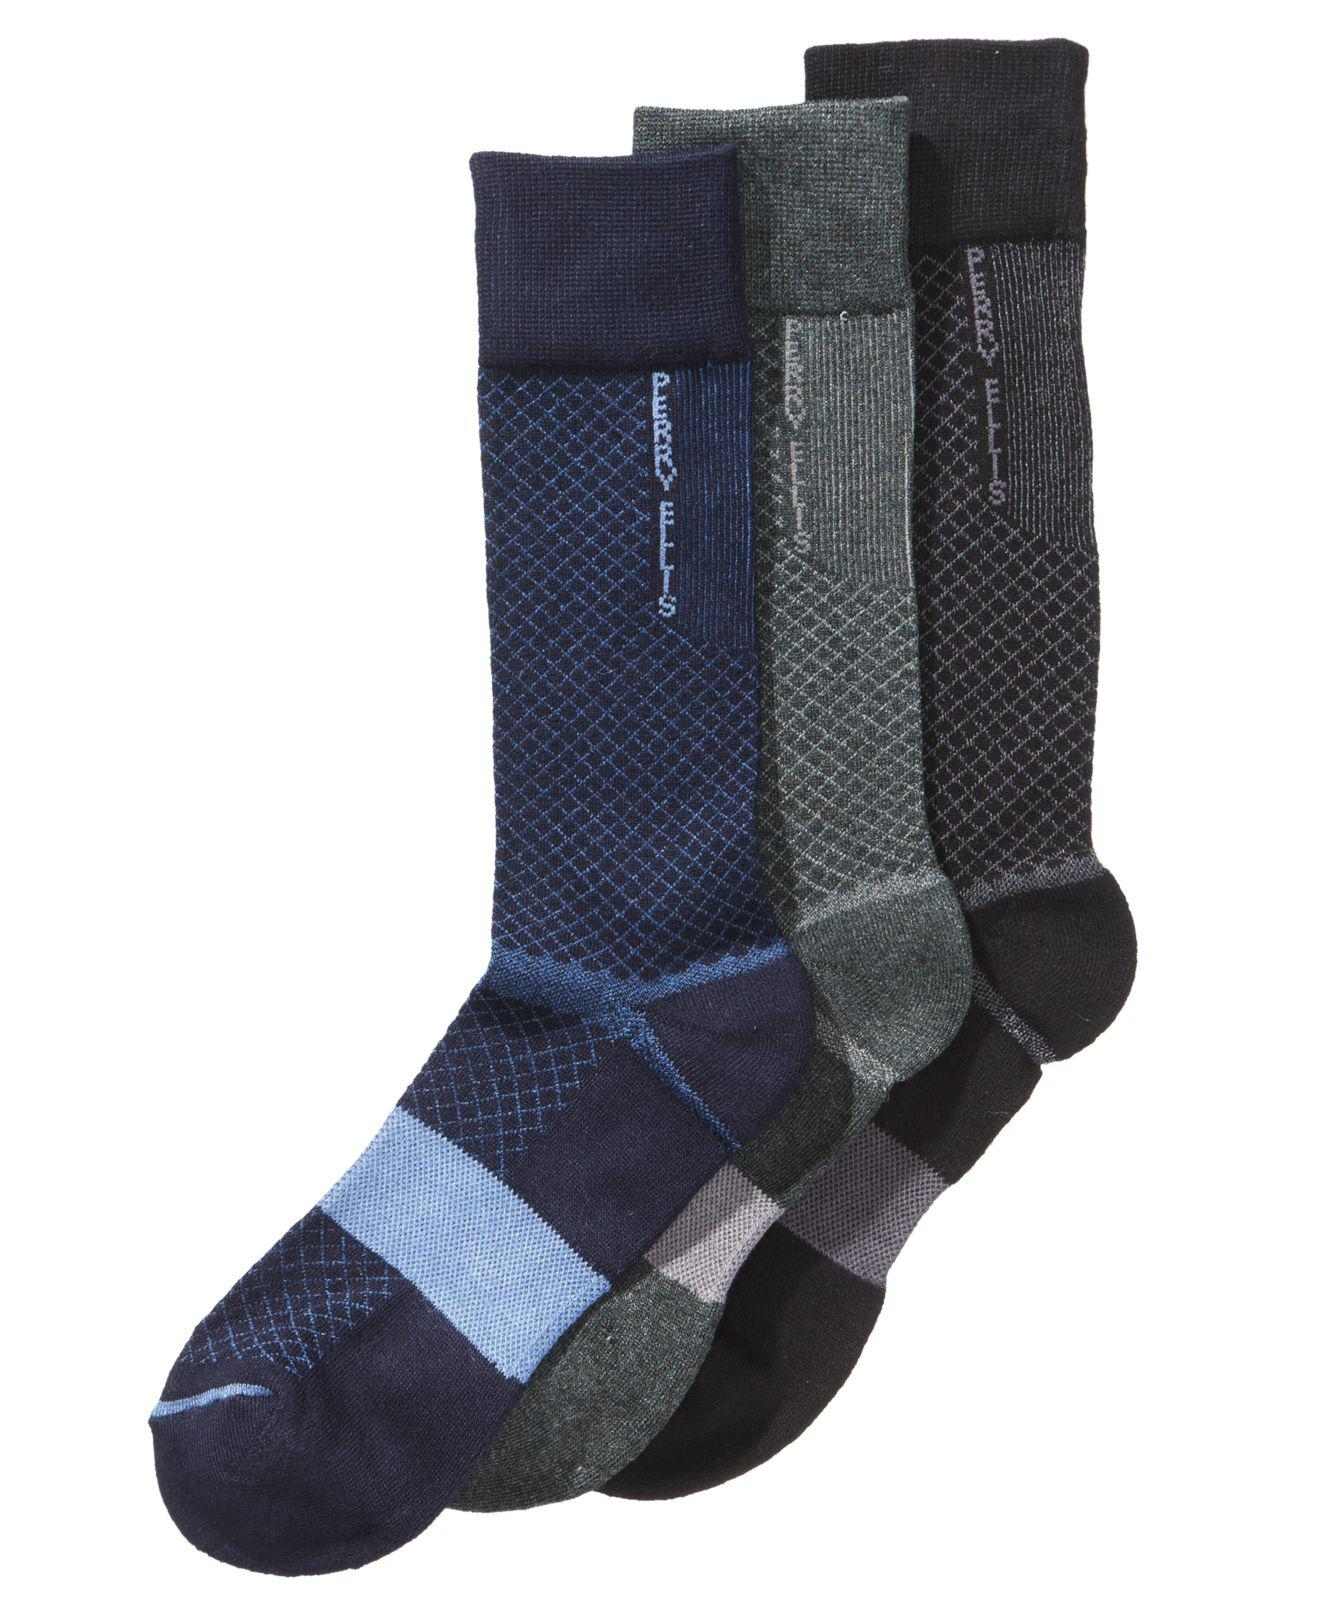 4cd5a64b29 Lyst - Perry Ellis Men s 3-pk. C-fit Performance Dress Socks in Gray ...